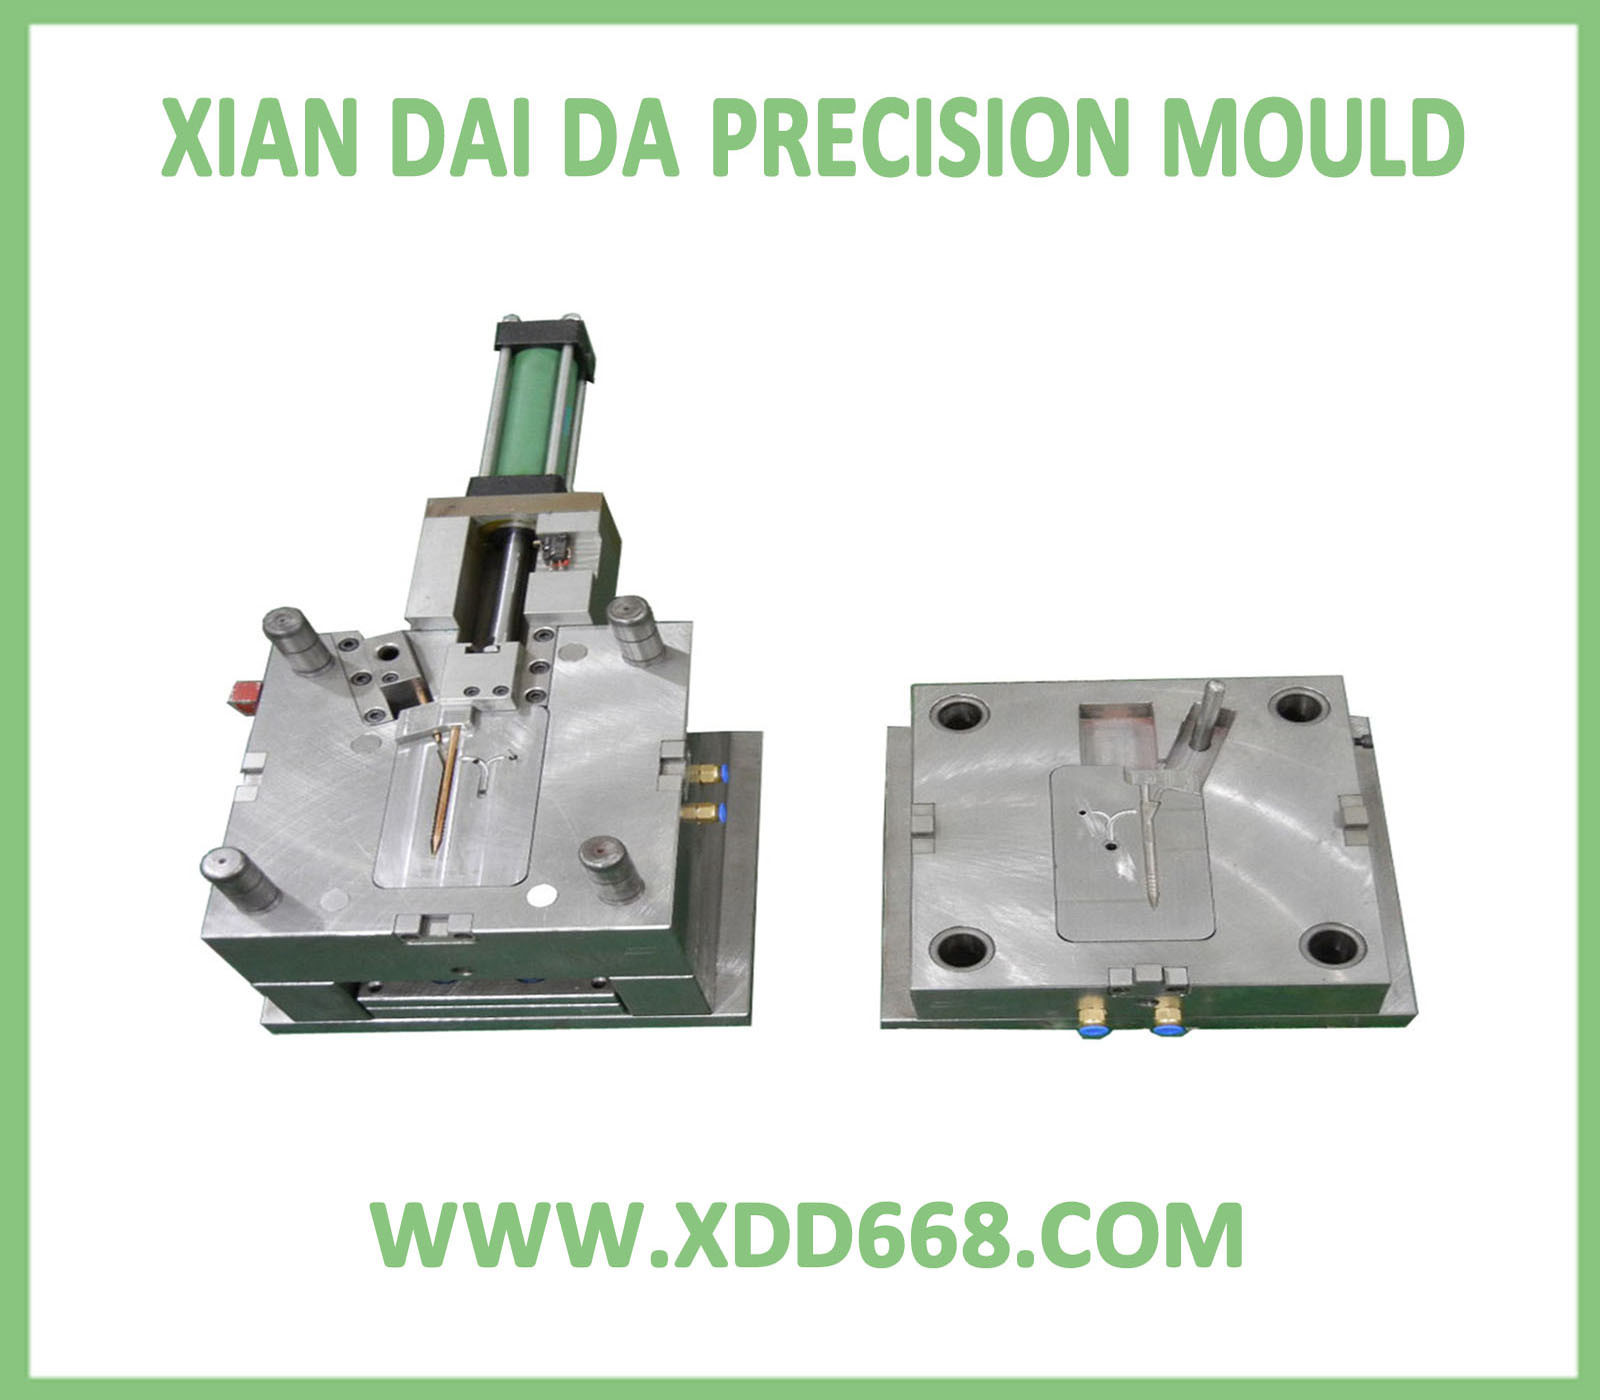 Plastic Injection Mould For Medical Injector Xdd 0030